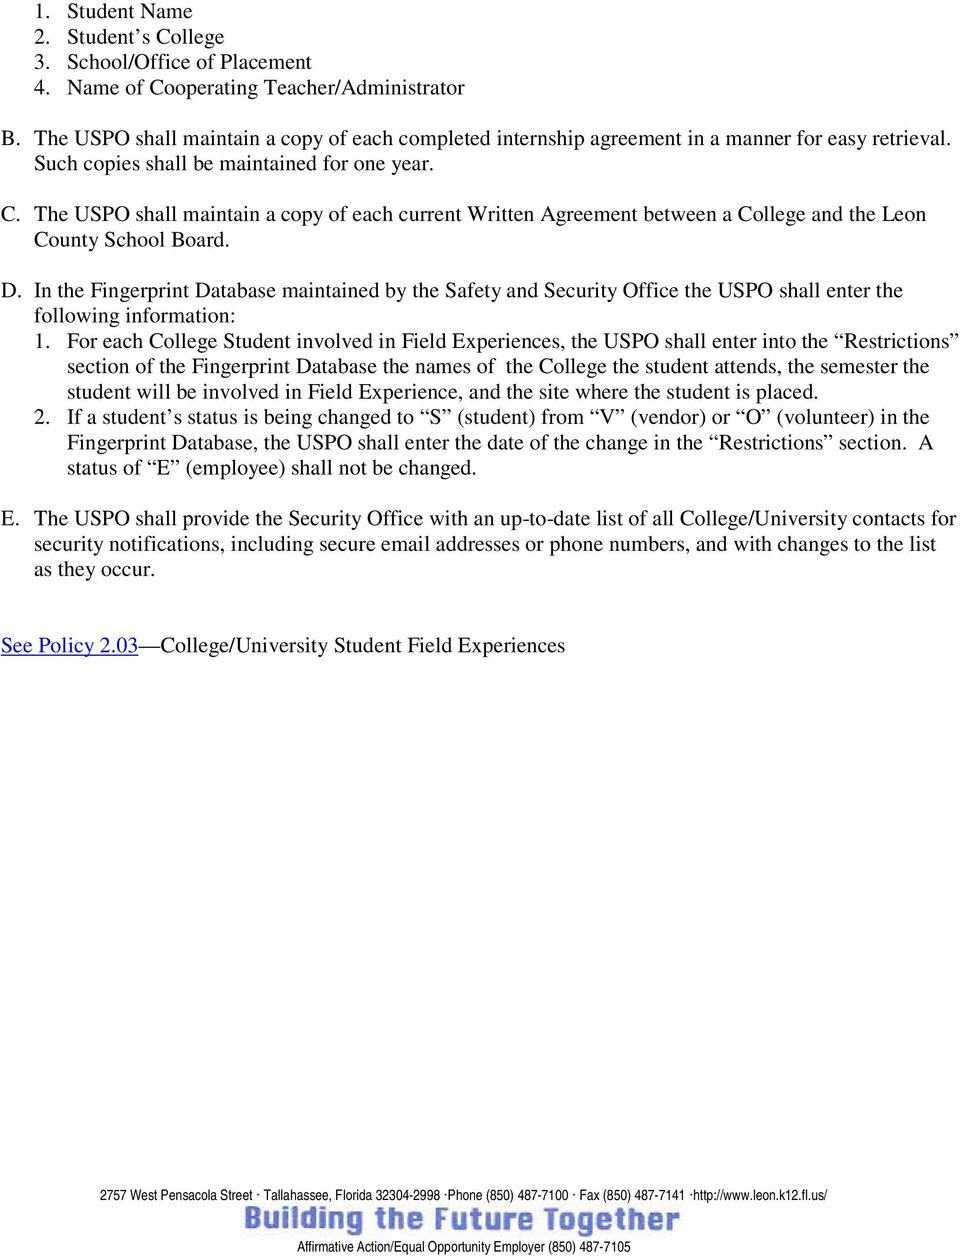 The USPO shall maintain a copy of each current Written Agreement between a College and the Leon County School Board. D.